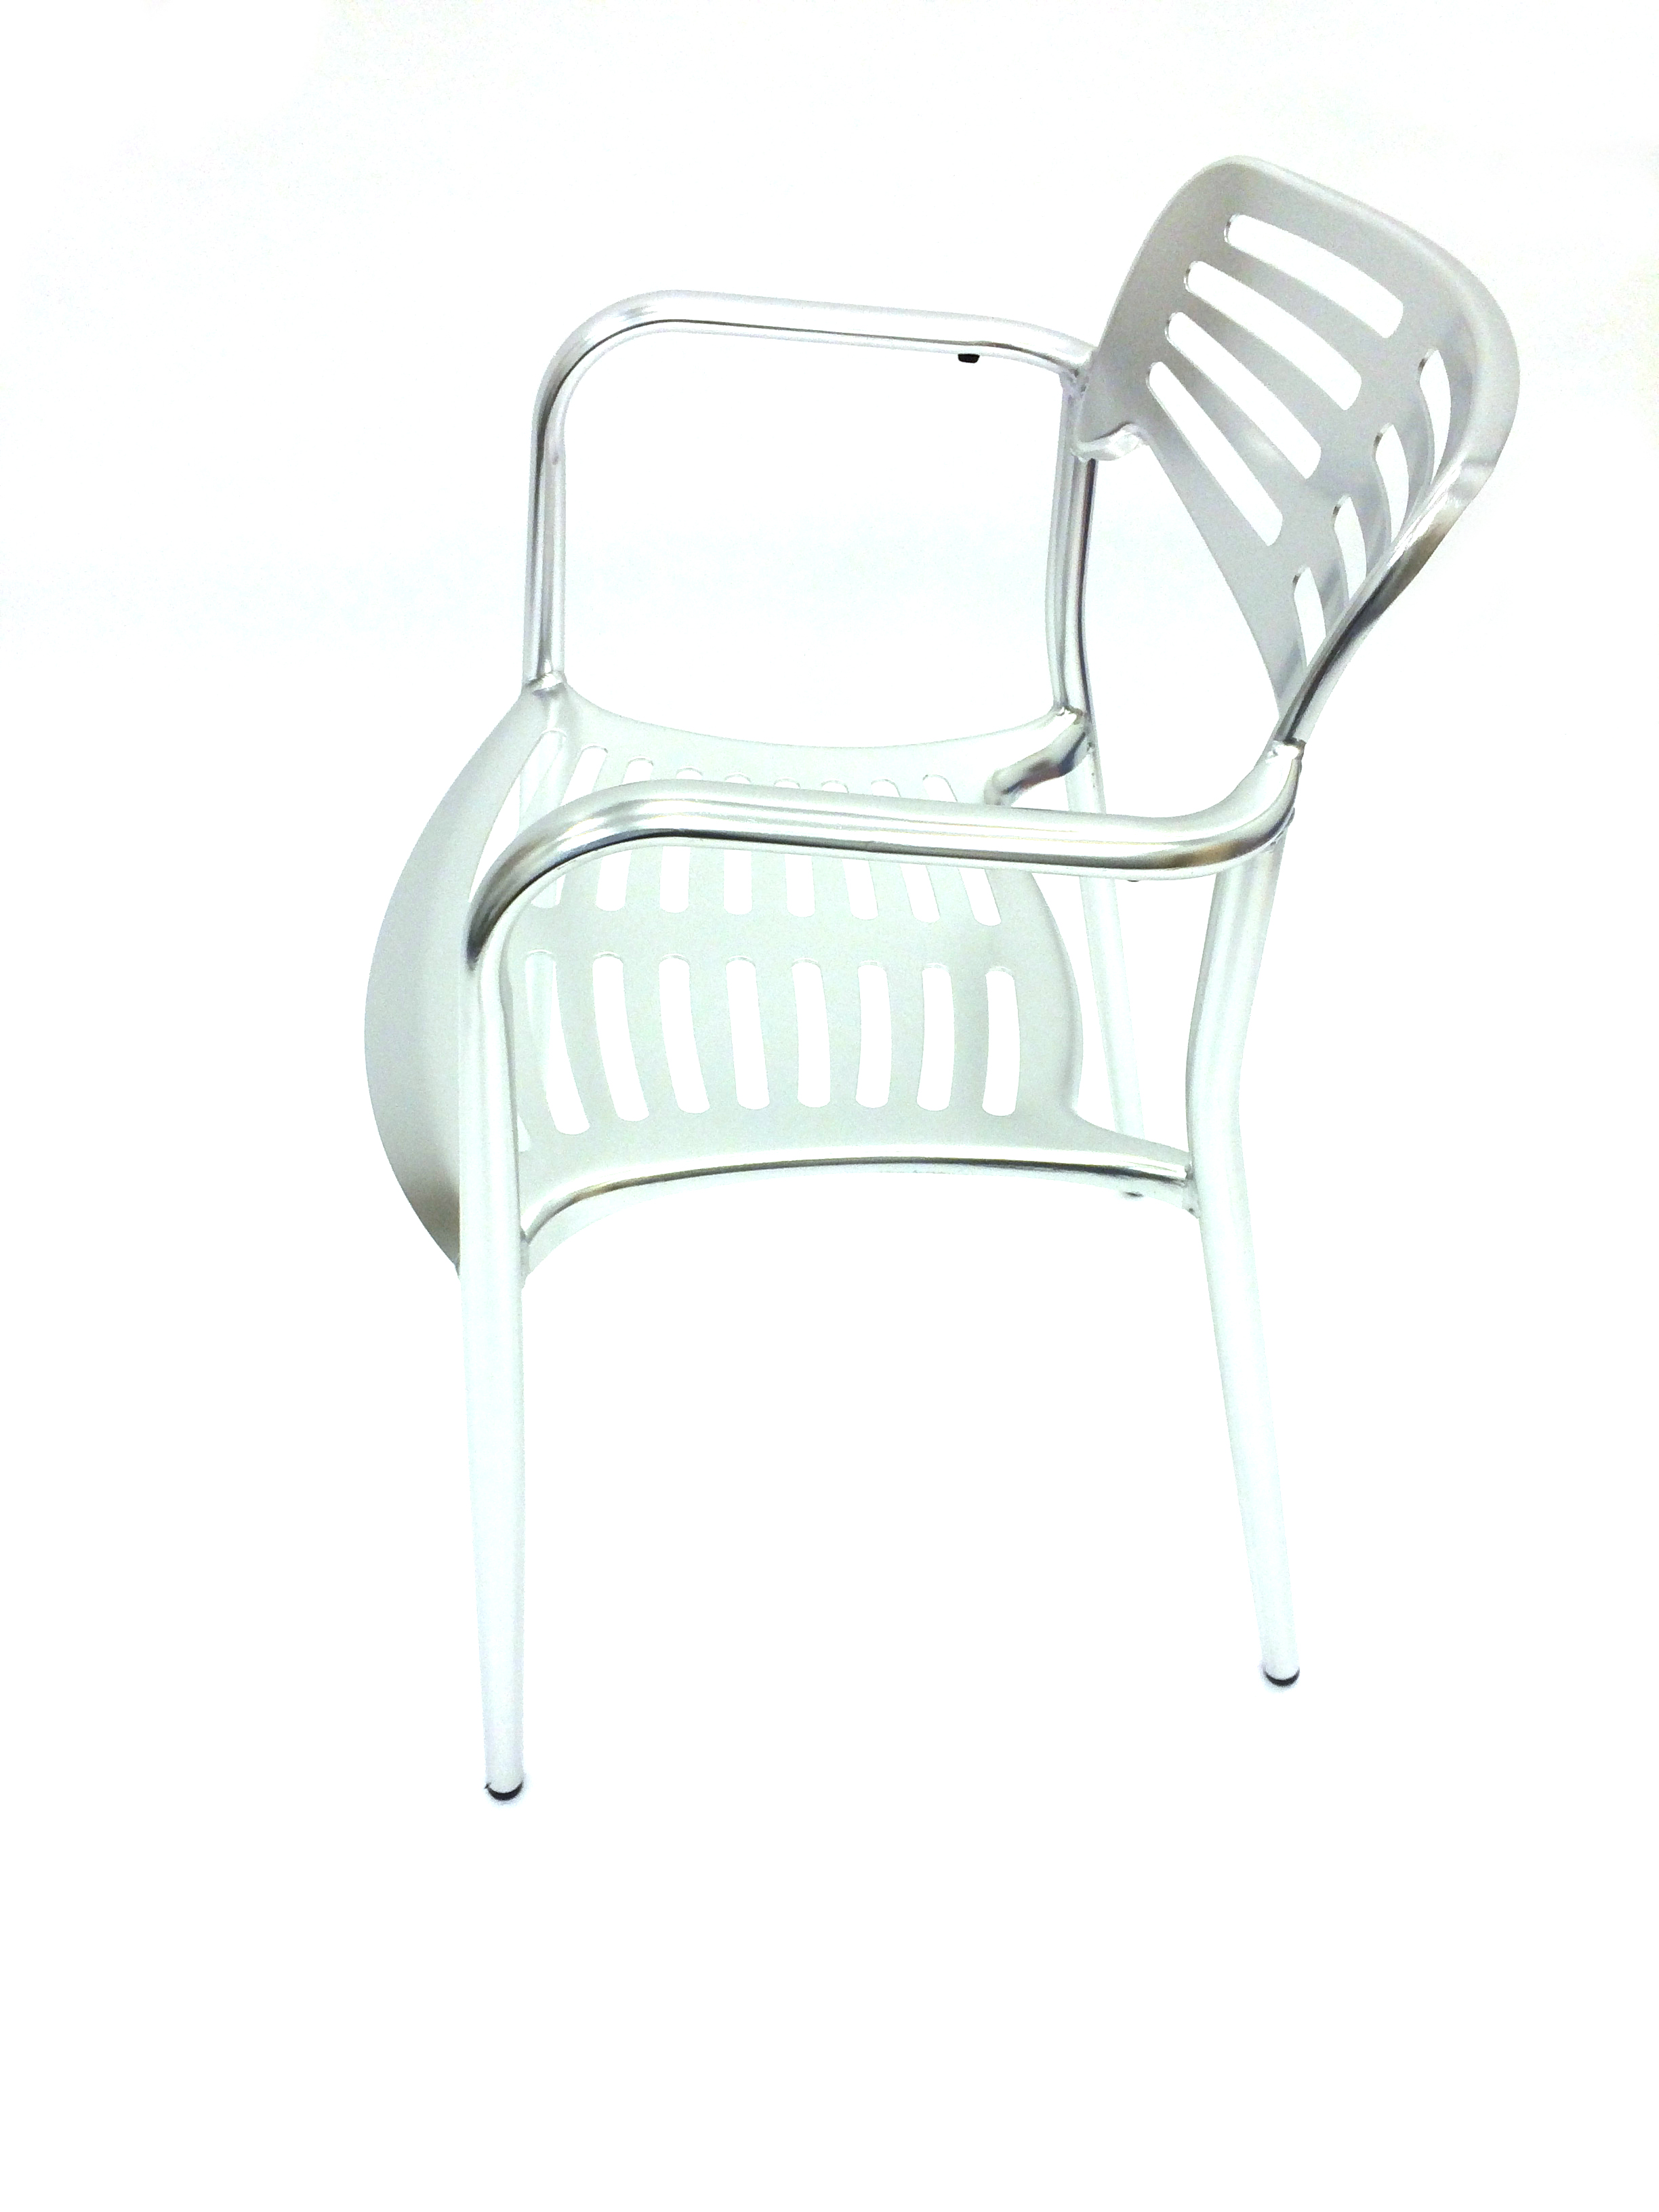 High quality Lightweight welded aluminium bistro chair - BE Event Hire